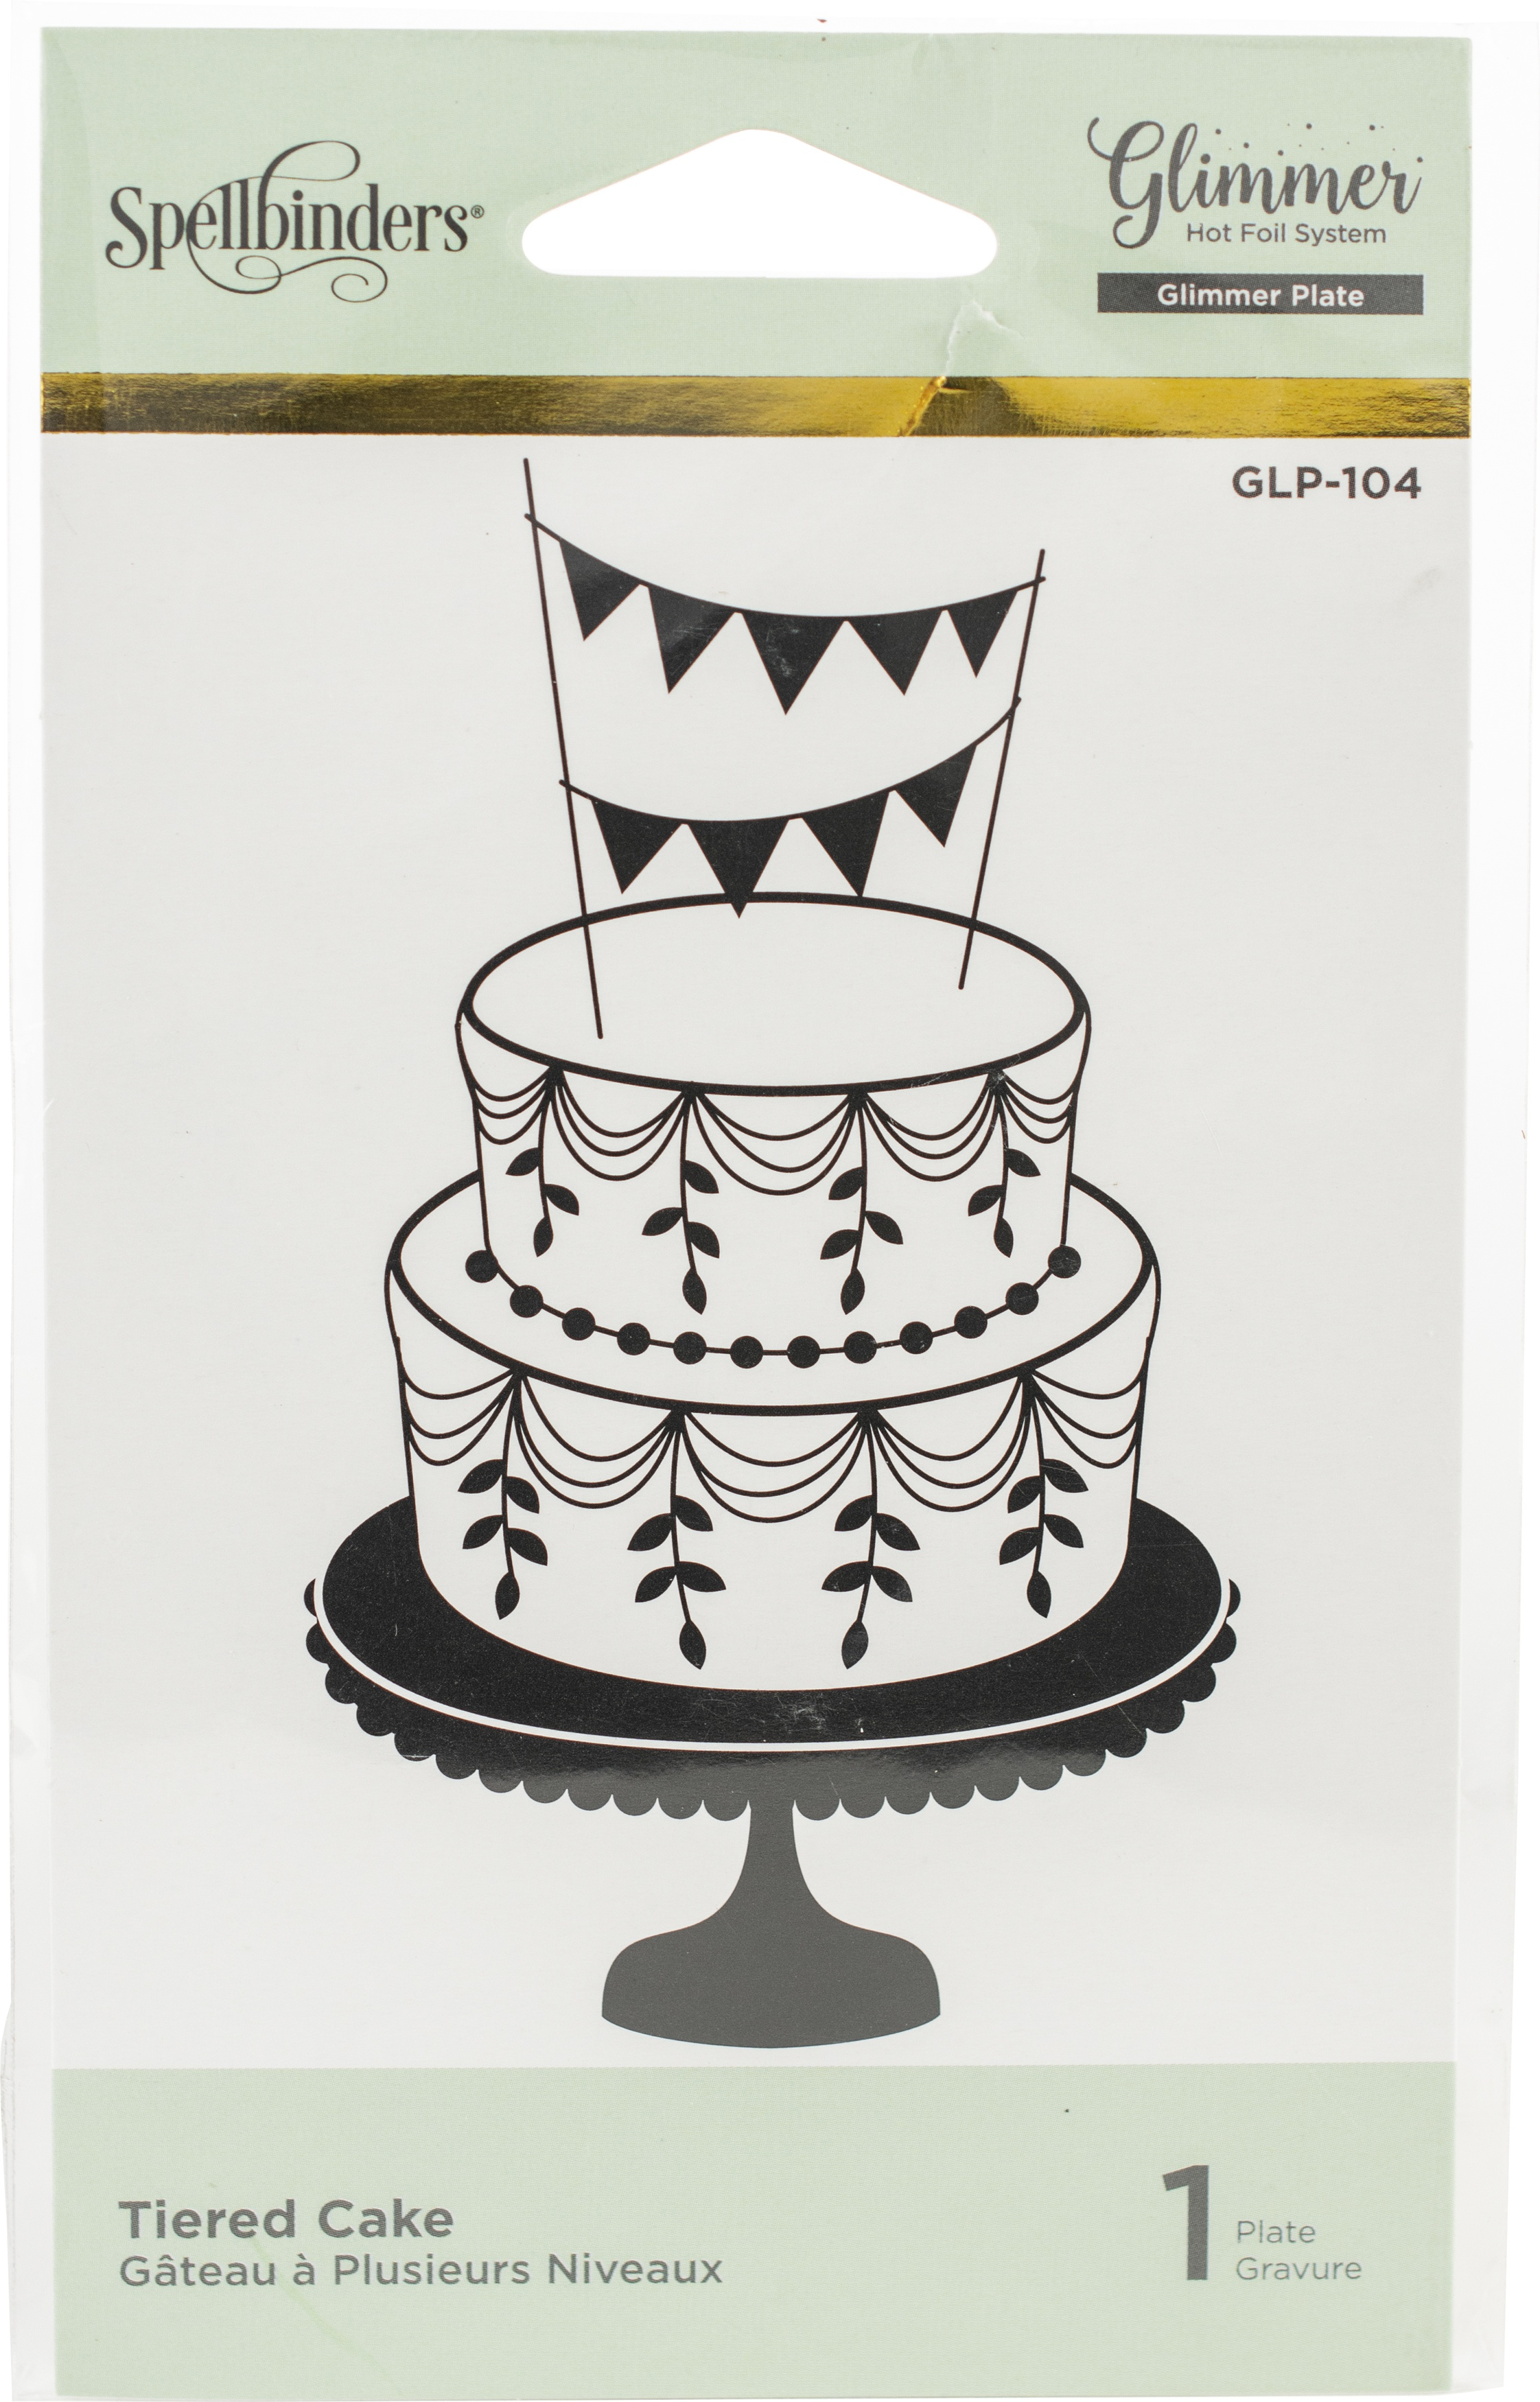 tiered cake glimmer plate